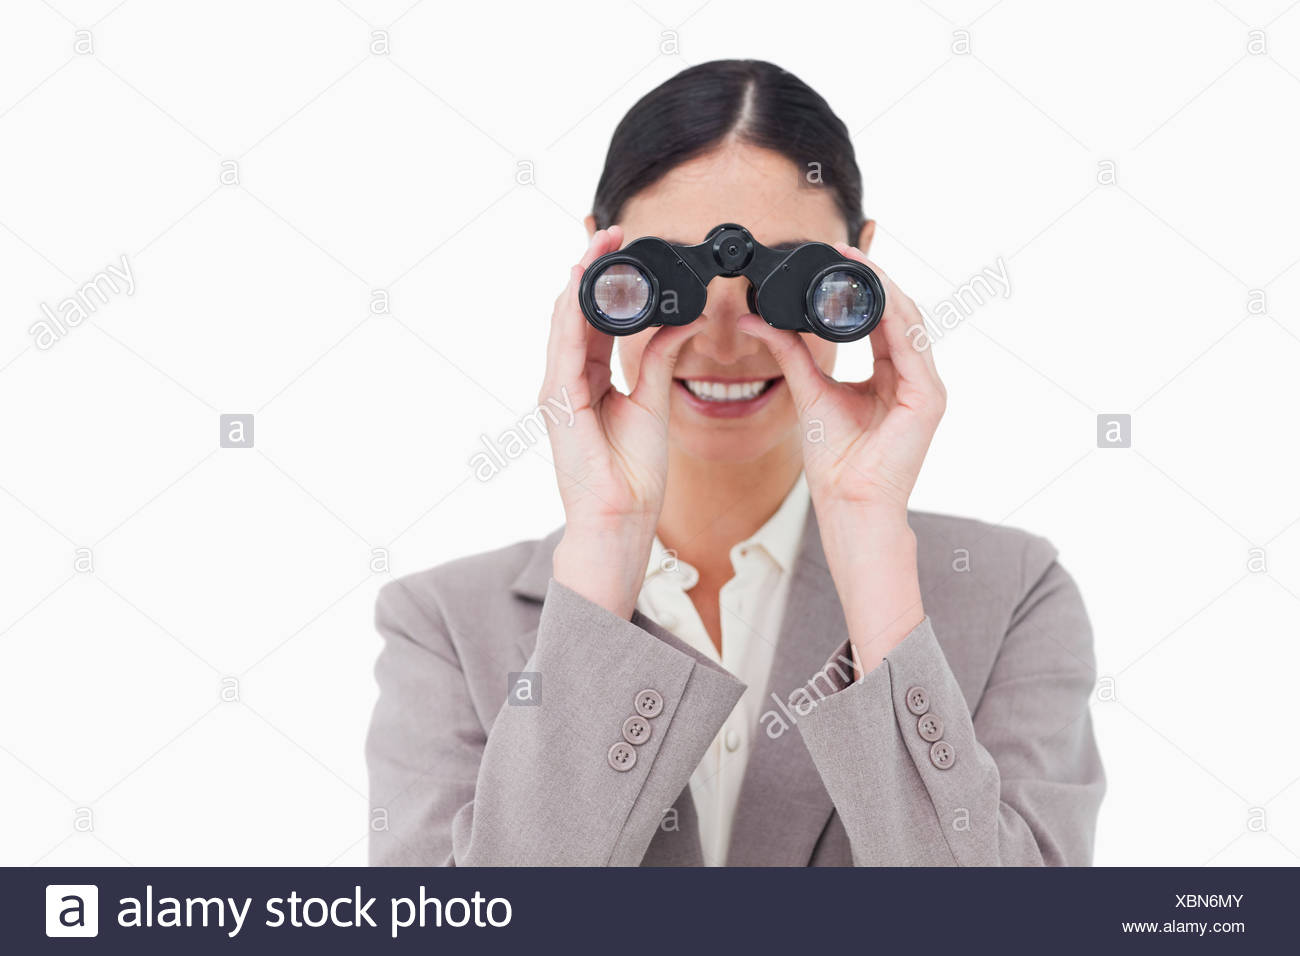 Smiling businesswoman looking through spy glasses - Stock Image